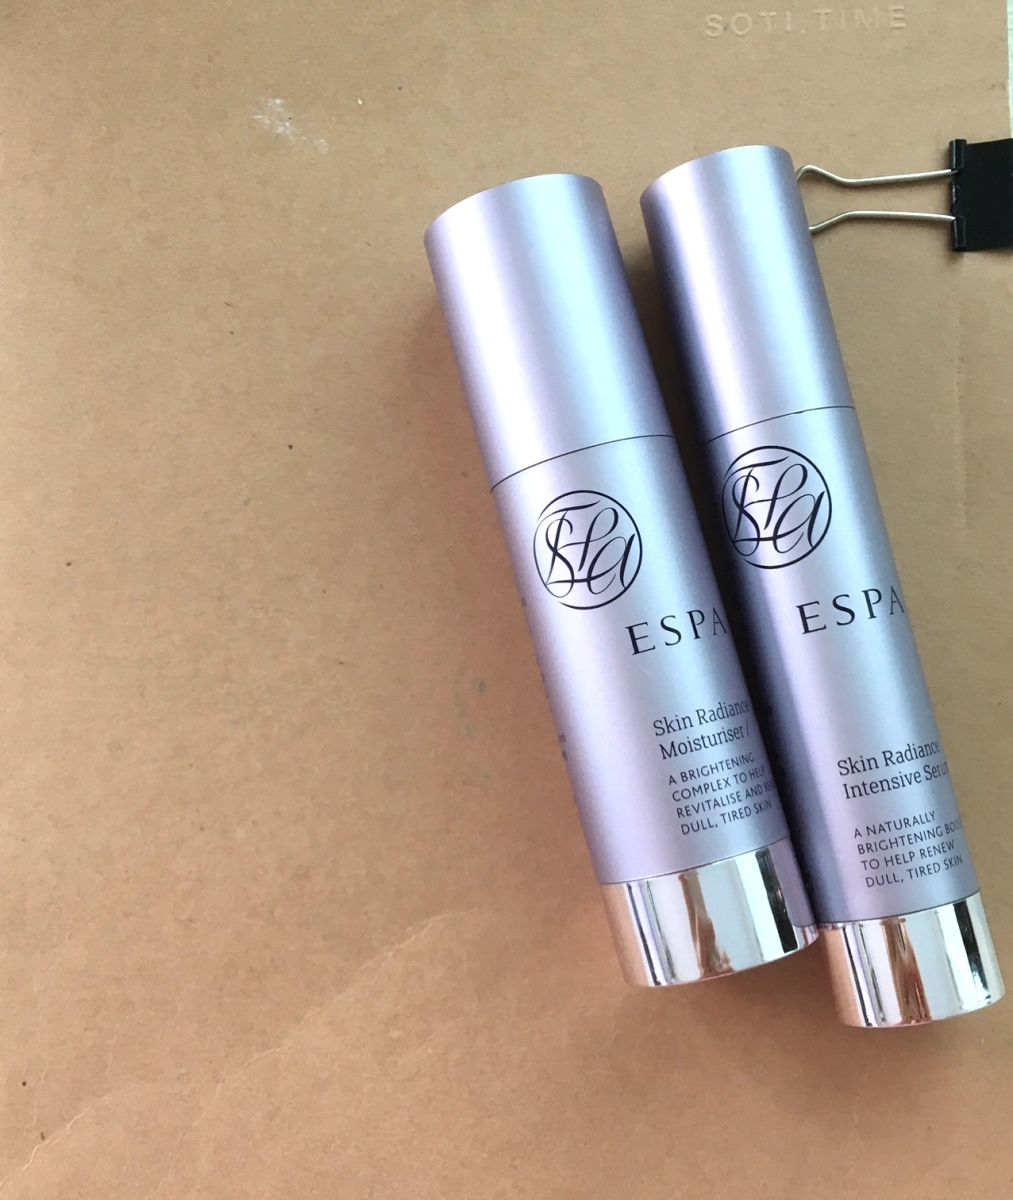 Review | Espa Skin radiance intensive serum and Skin Radiance Moisturiser